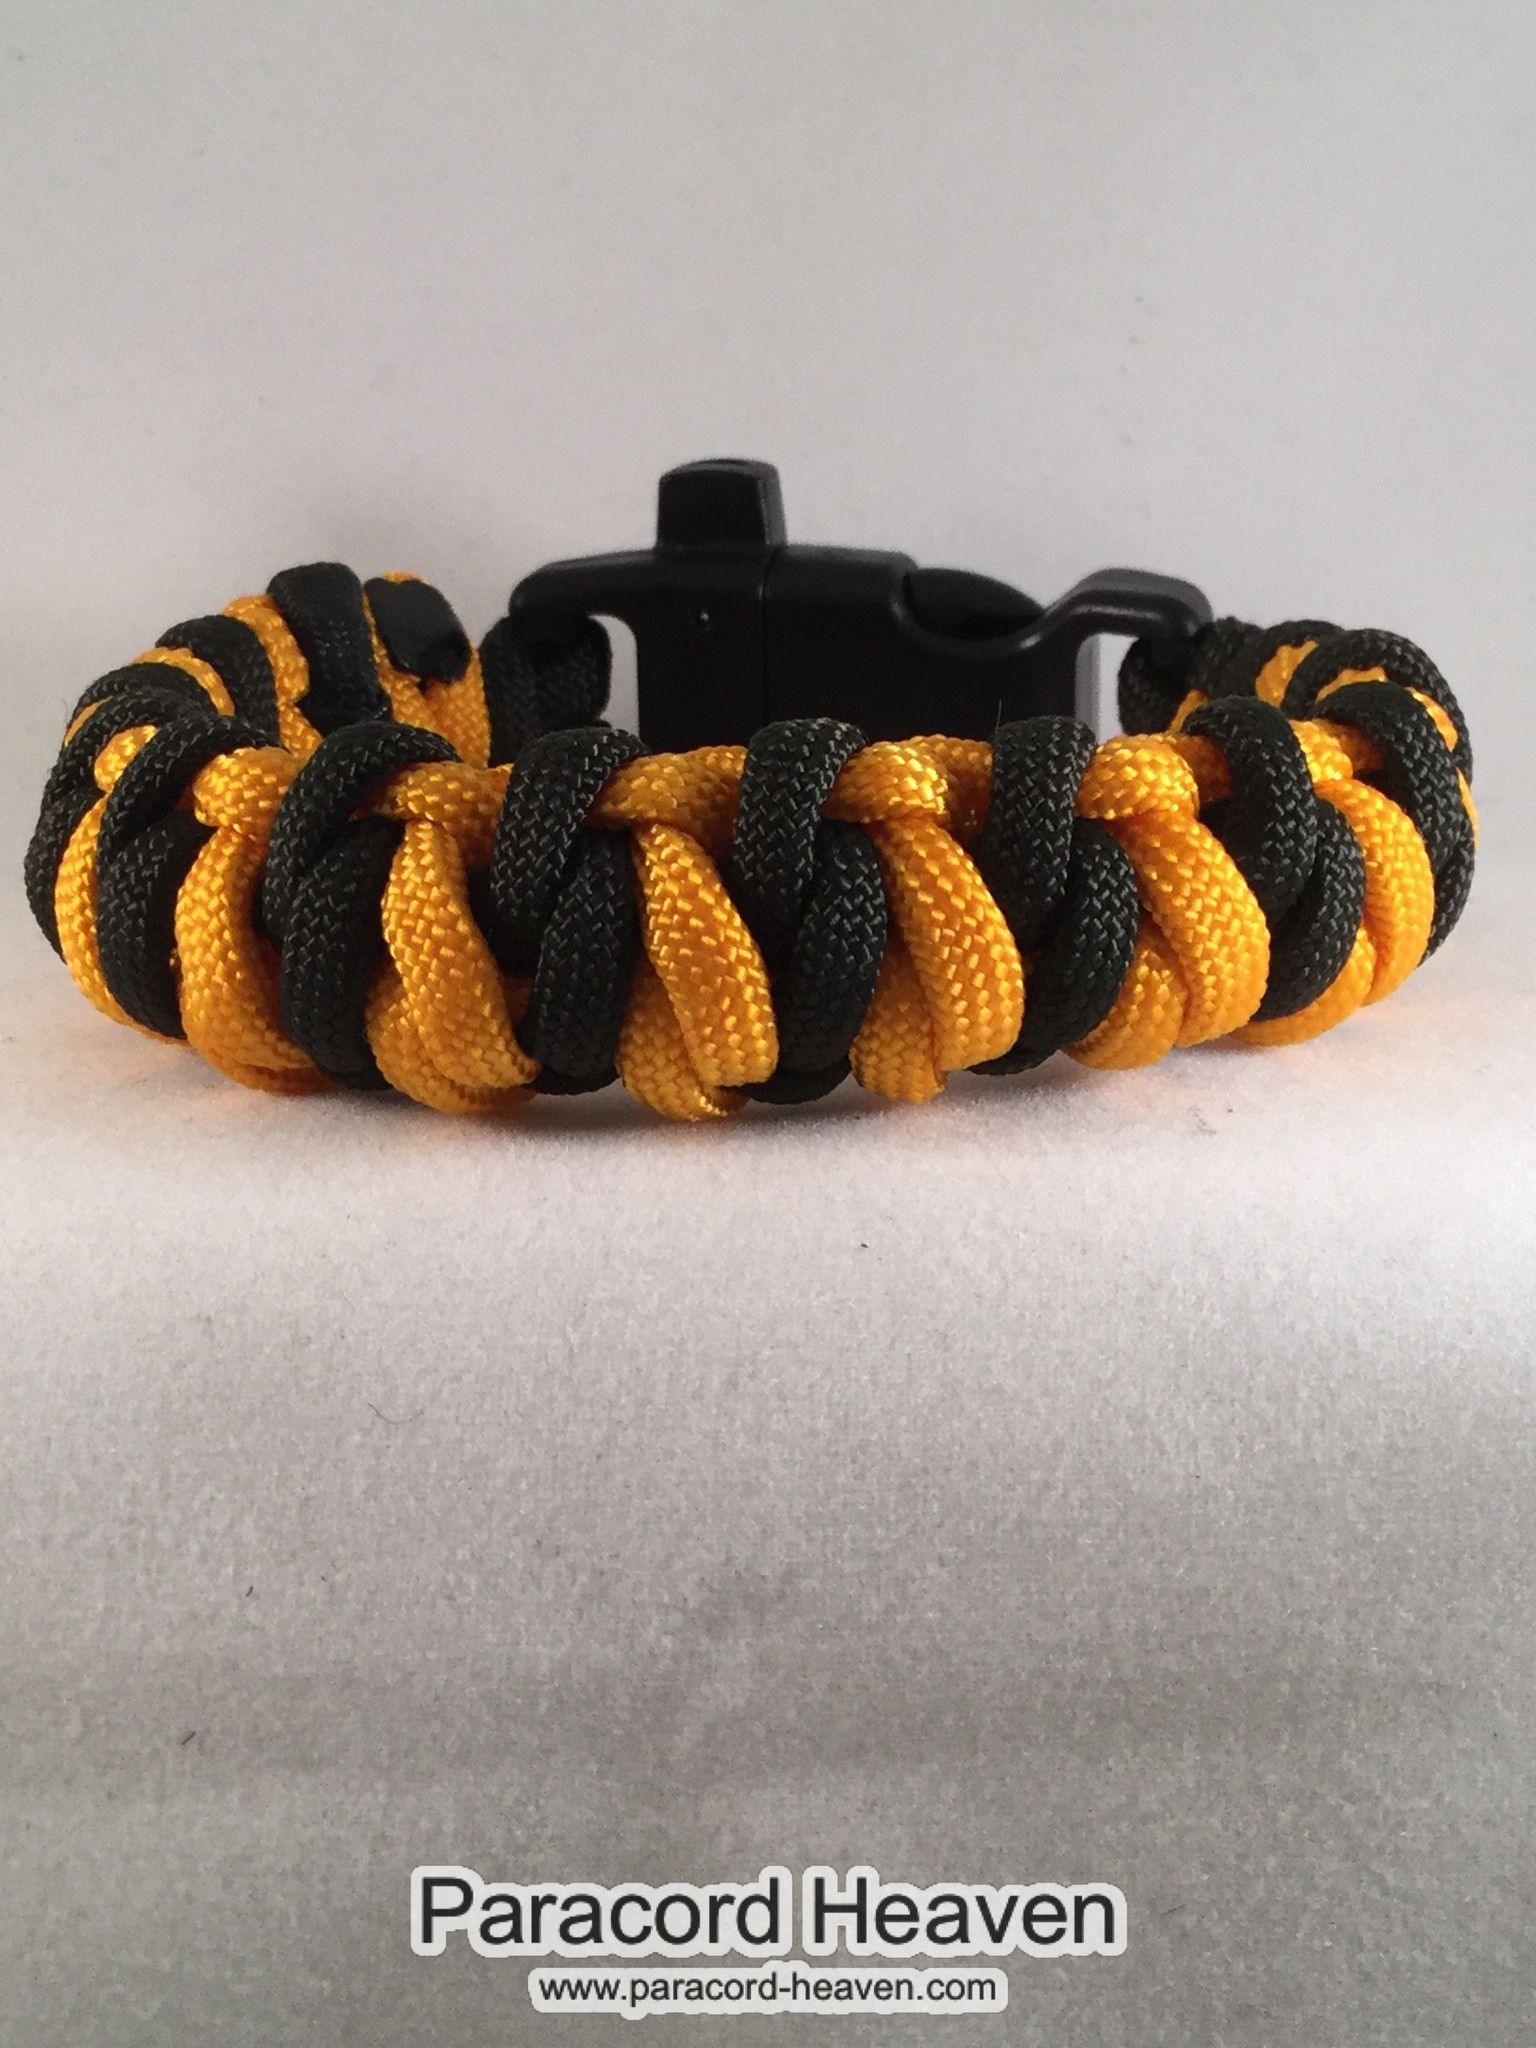 Wow! straight out of the production line check out this new product: The Black Nebula ... Check it out right here! http://www.paracord-heaven.com/products/the-black-nebula-surreal-solomon-survival-bracelet